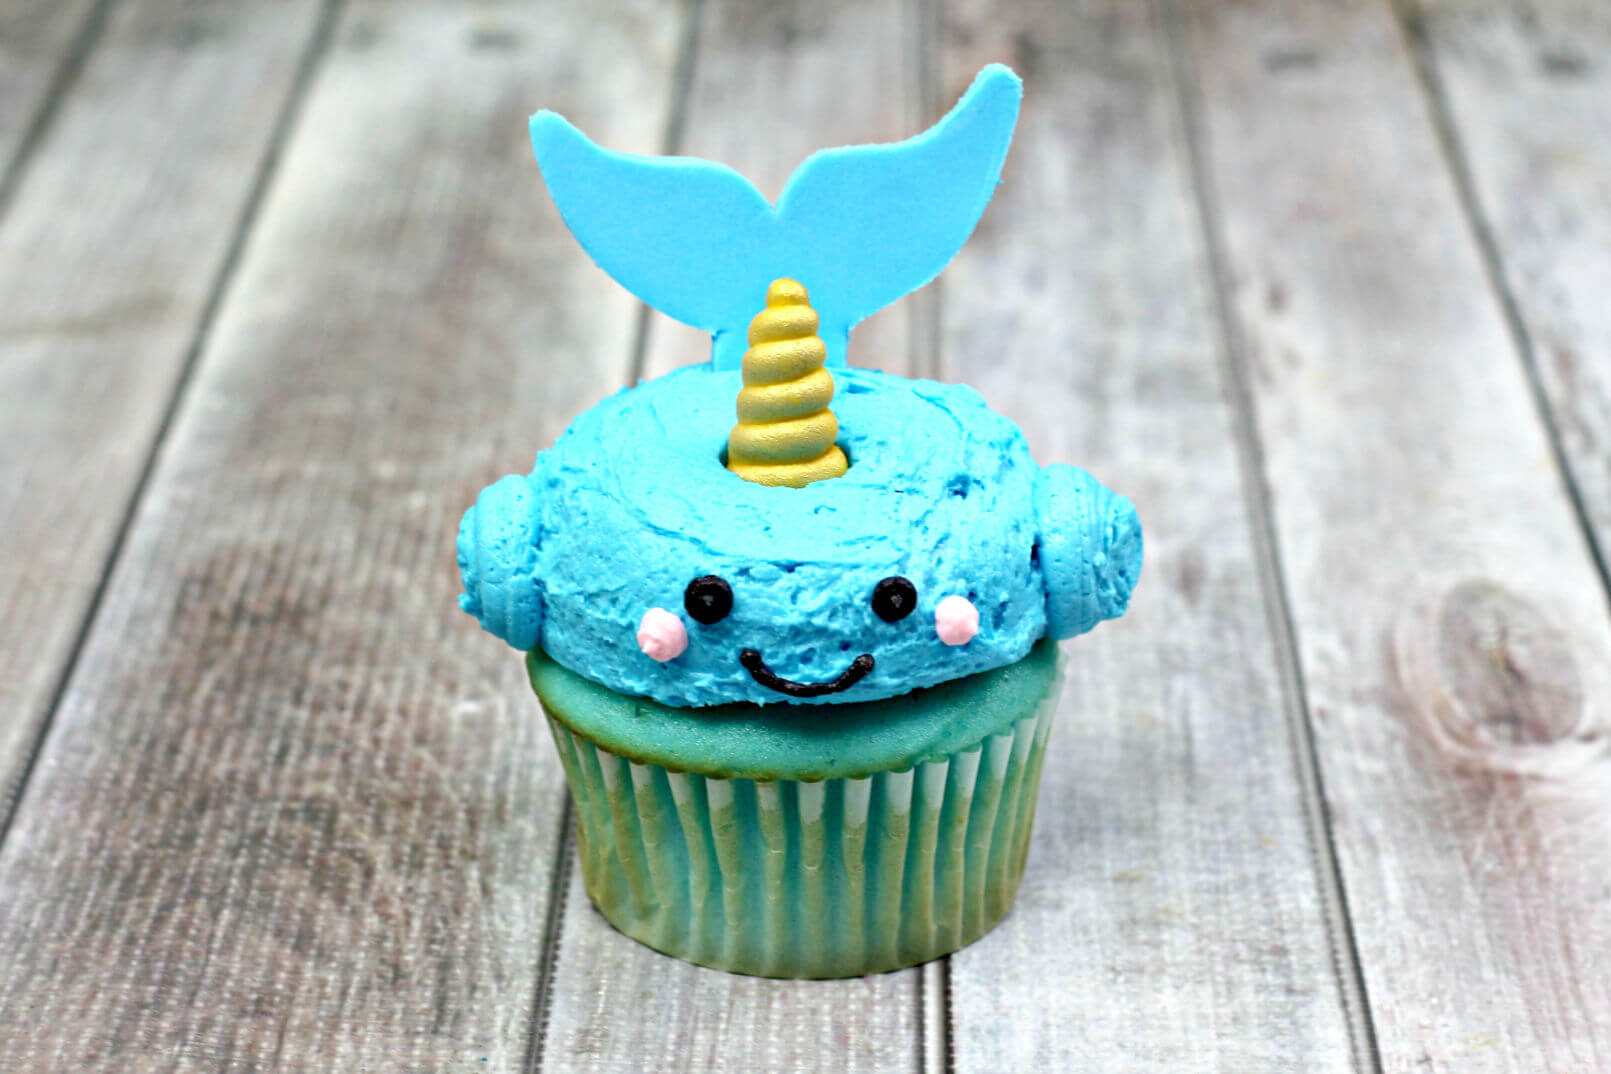 Narwhale Cupcakes with tail